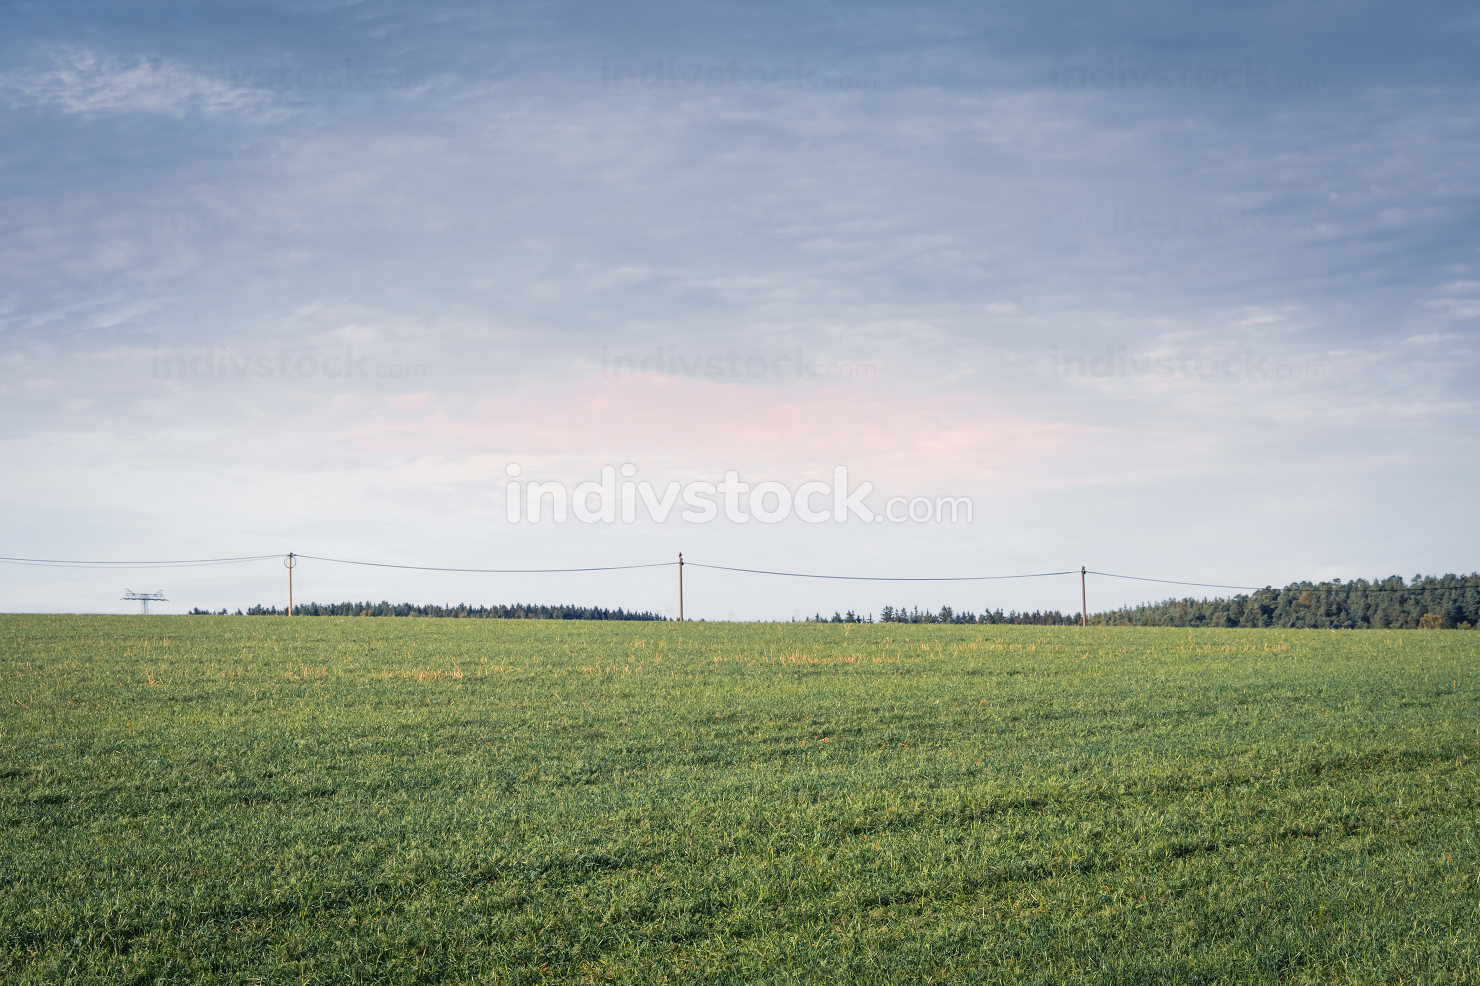 Large flat green field with electricity pylons